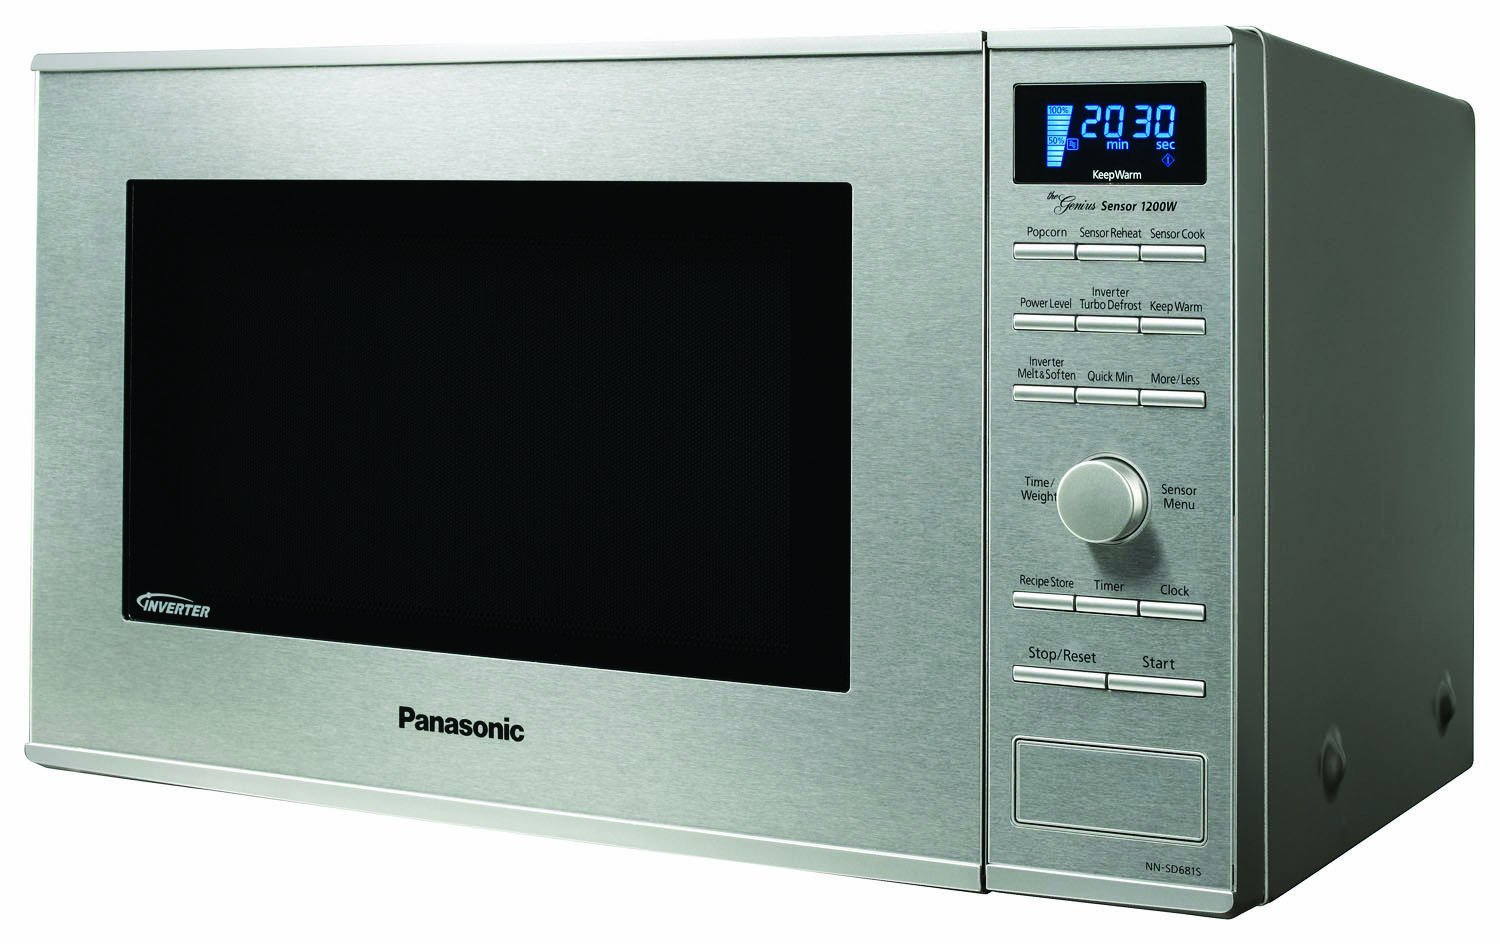 Range Oven: Microwave Ovens Over The Range Reviews